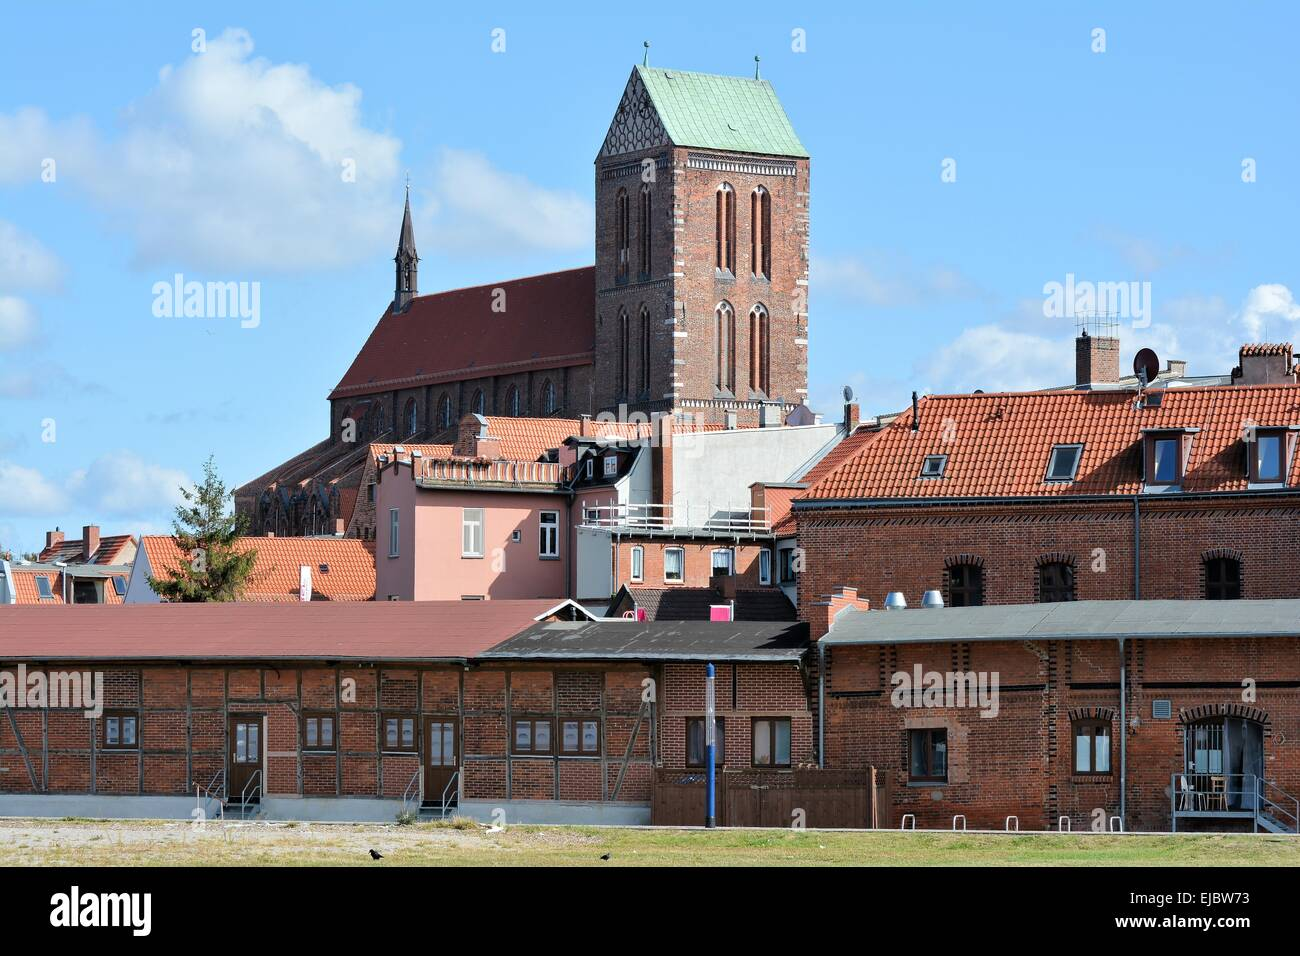 View of the old town of Wismar - Stock Image